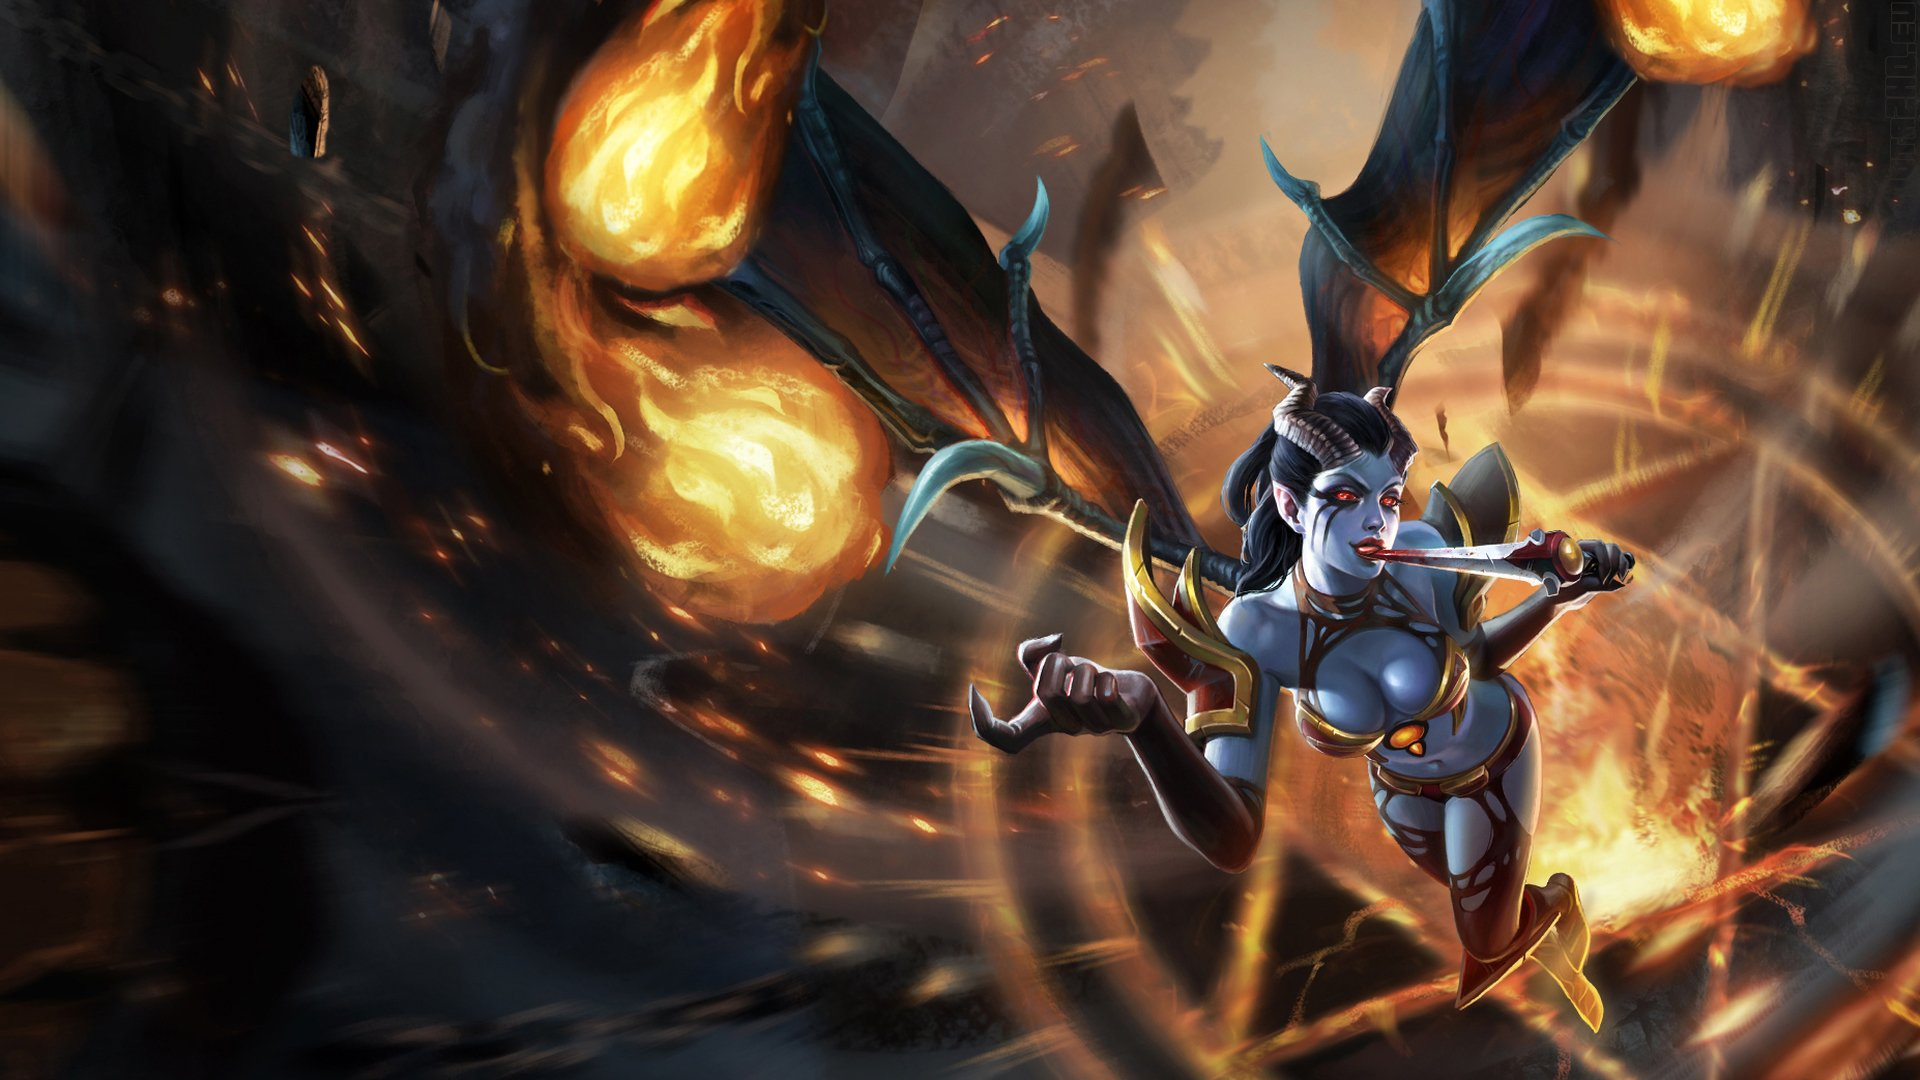 Dota Defense Of The Ancients Fire Supernatural Beings Queen Of